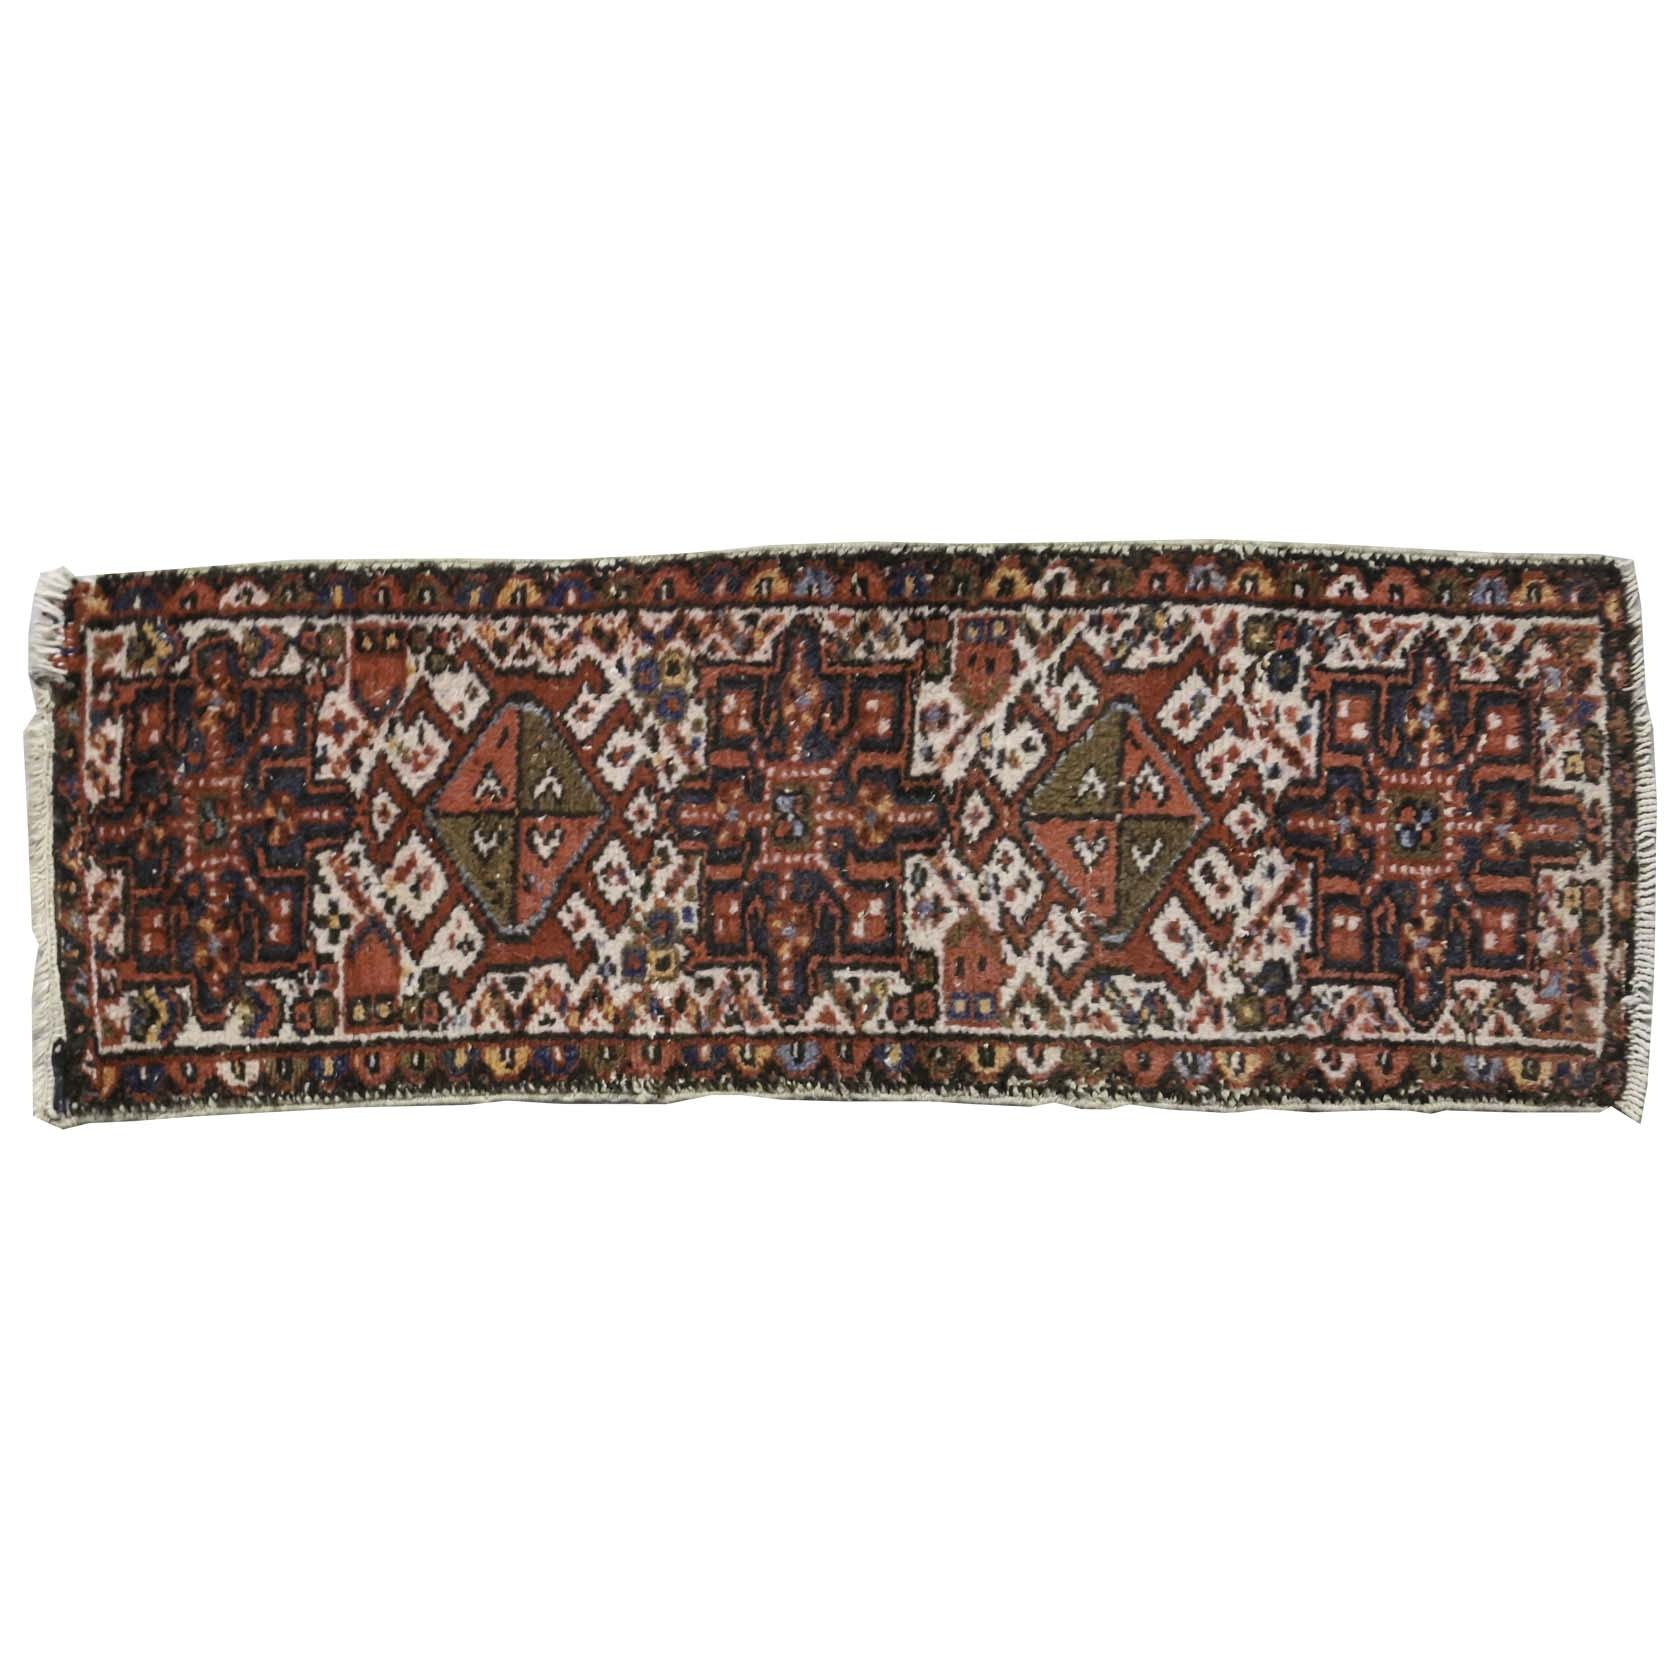 Antique Hand-Knotted Azeri Lamberan Carpet Runner